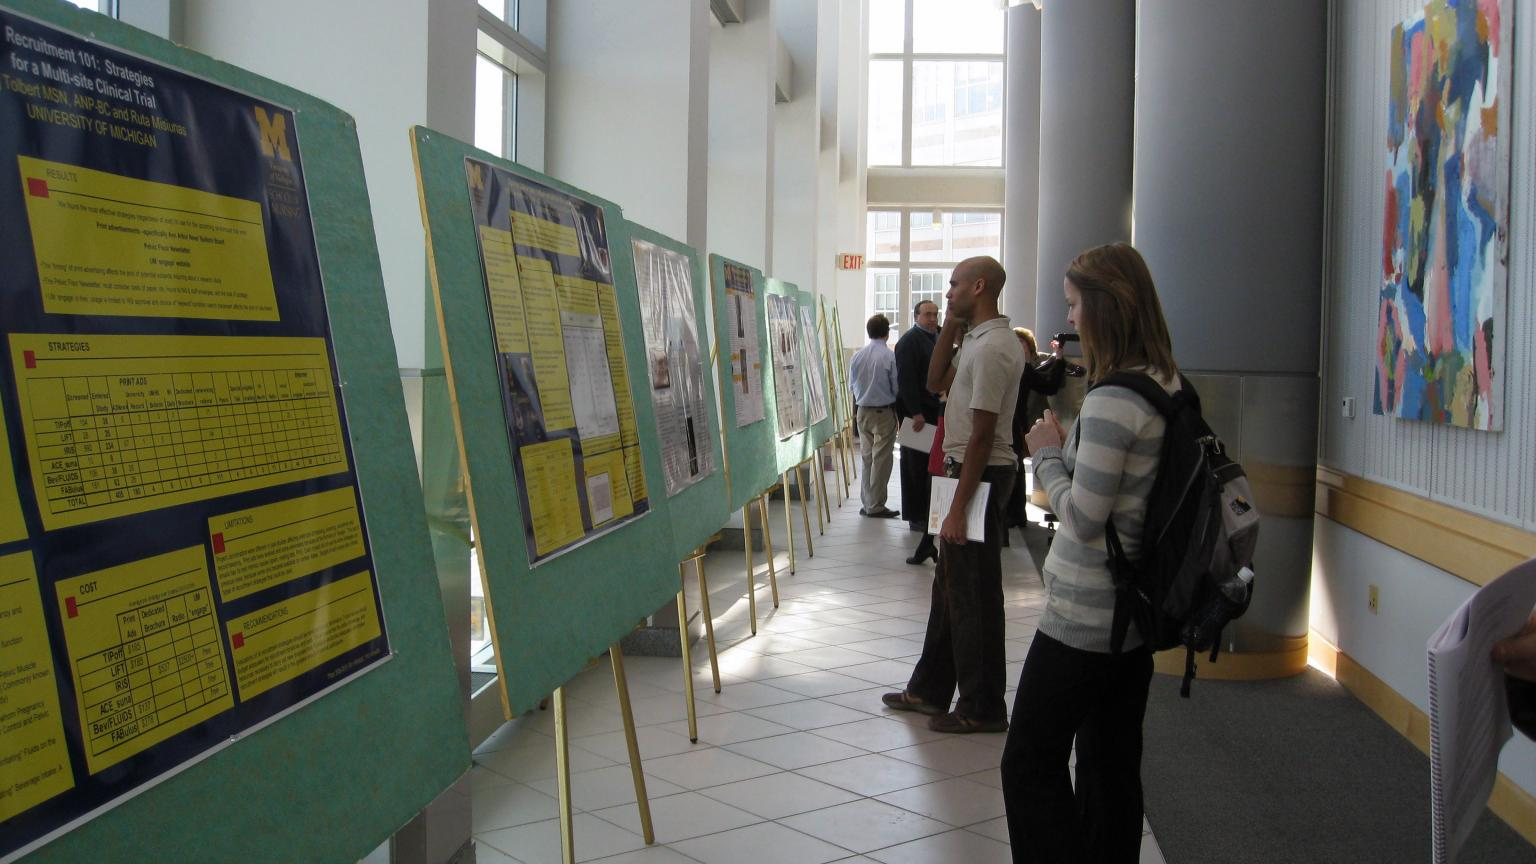 Participants View PFRG Day Poster